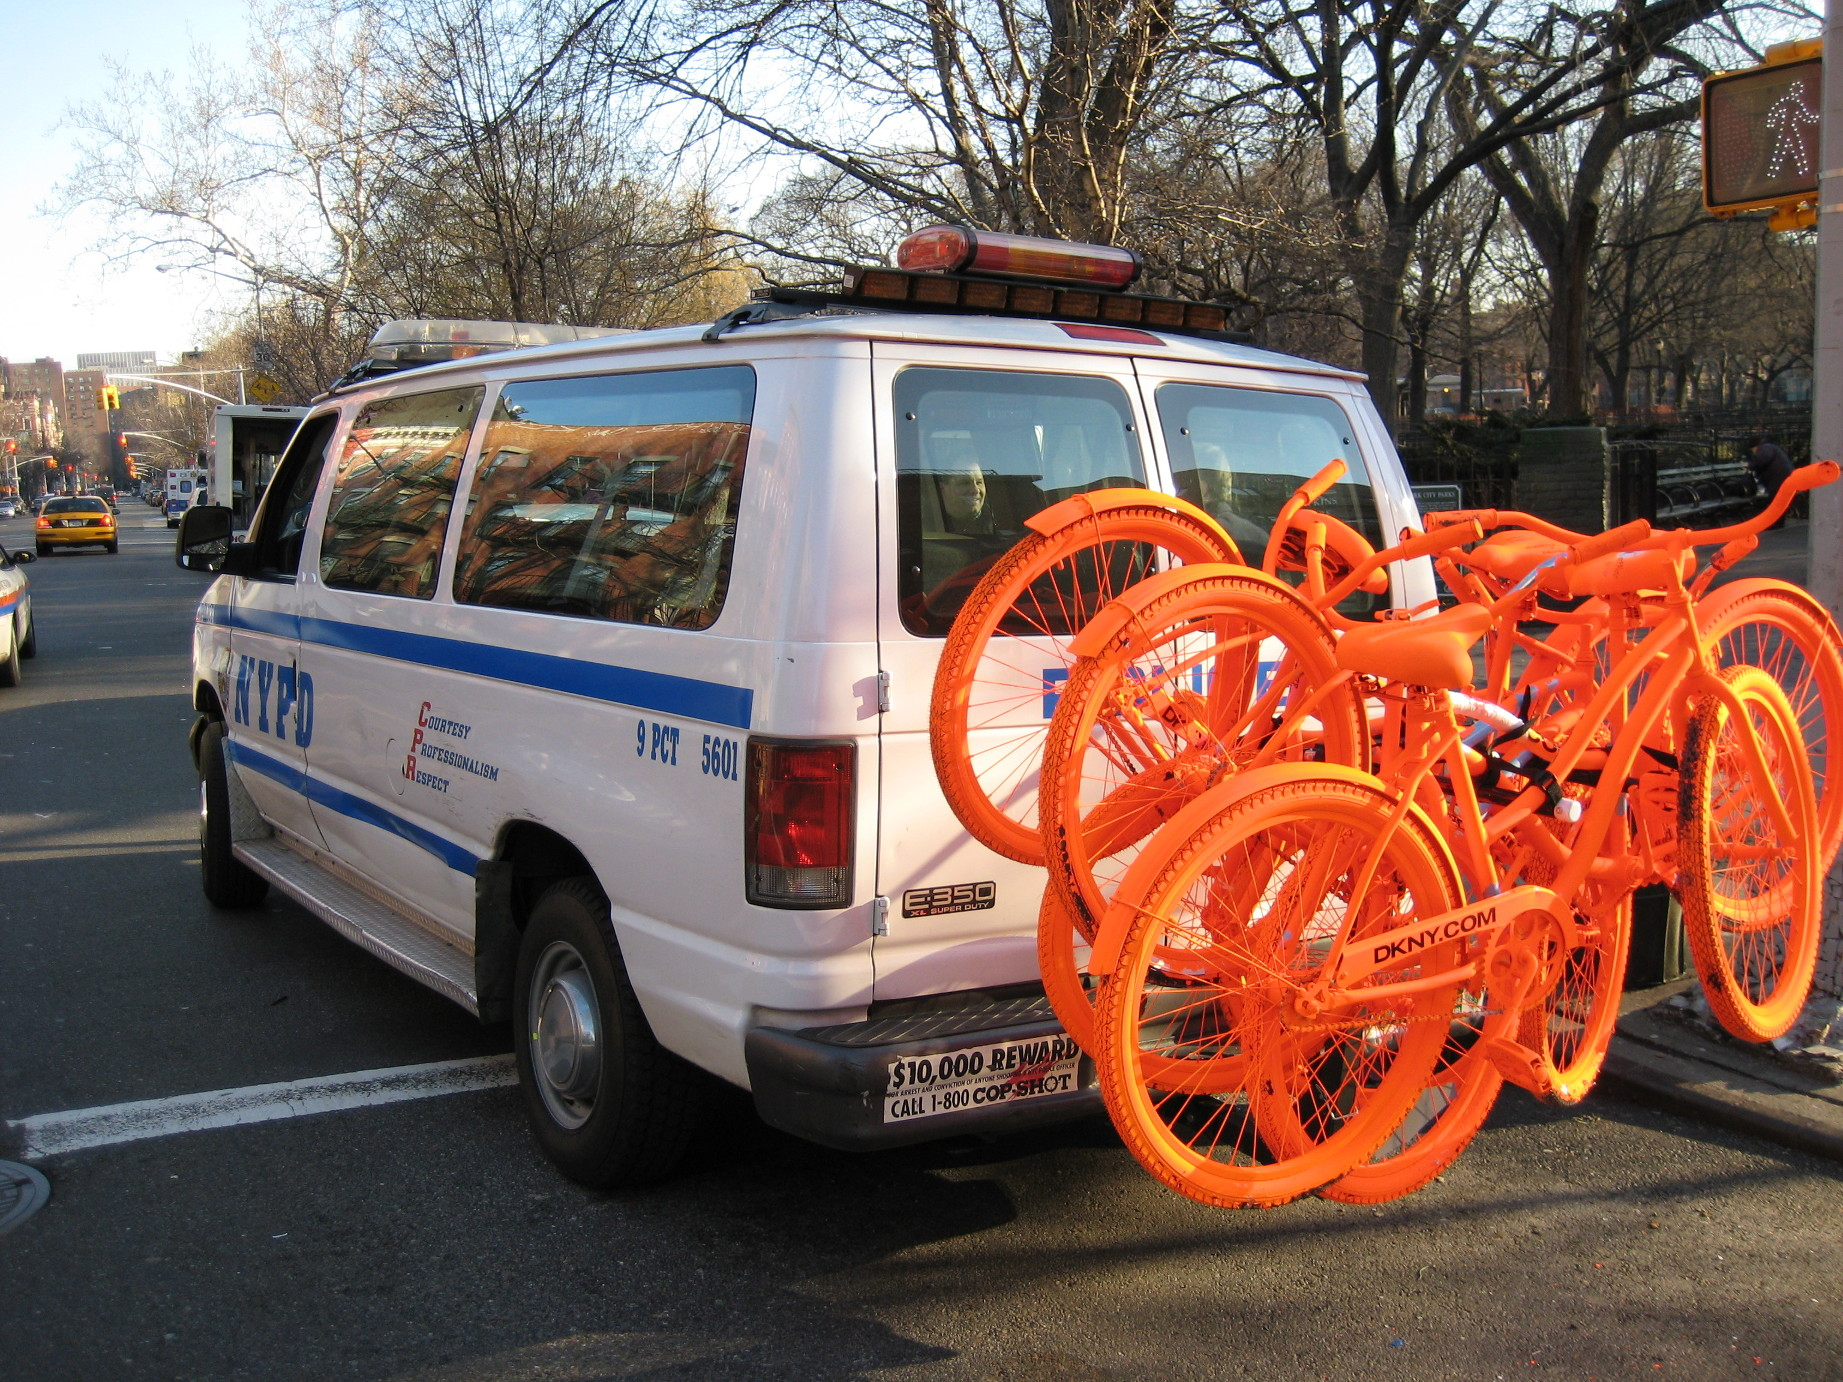 NYPD Van with five orange DKNY bikes on the back